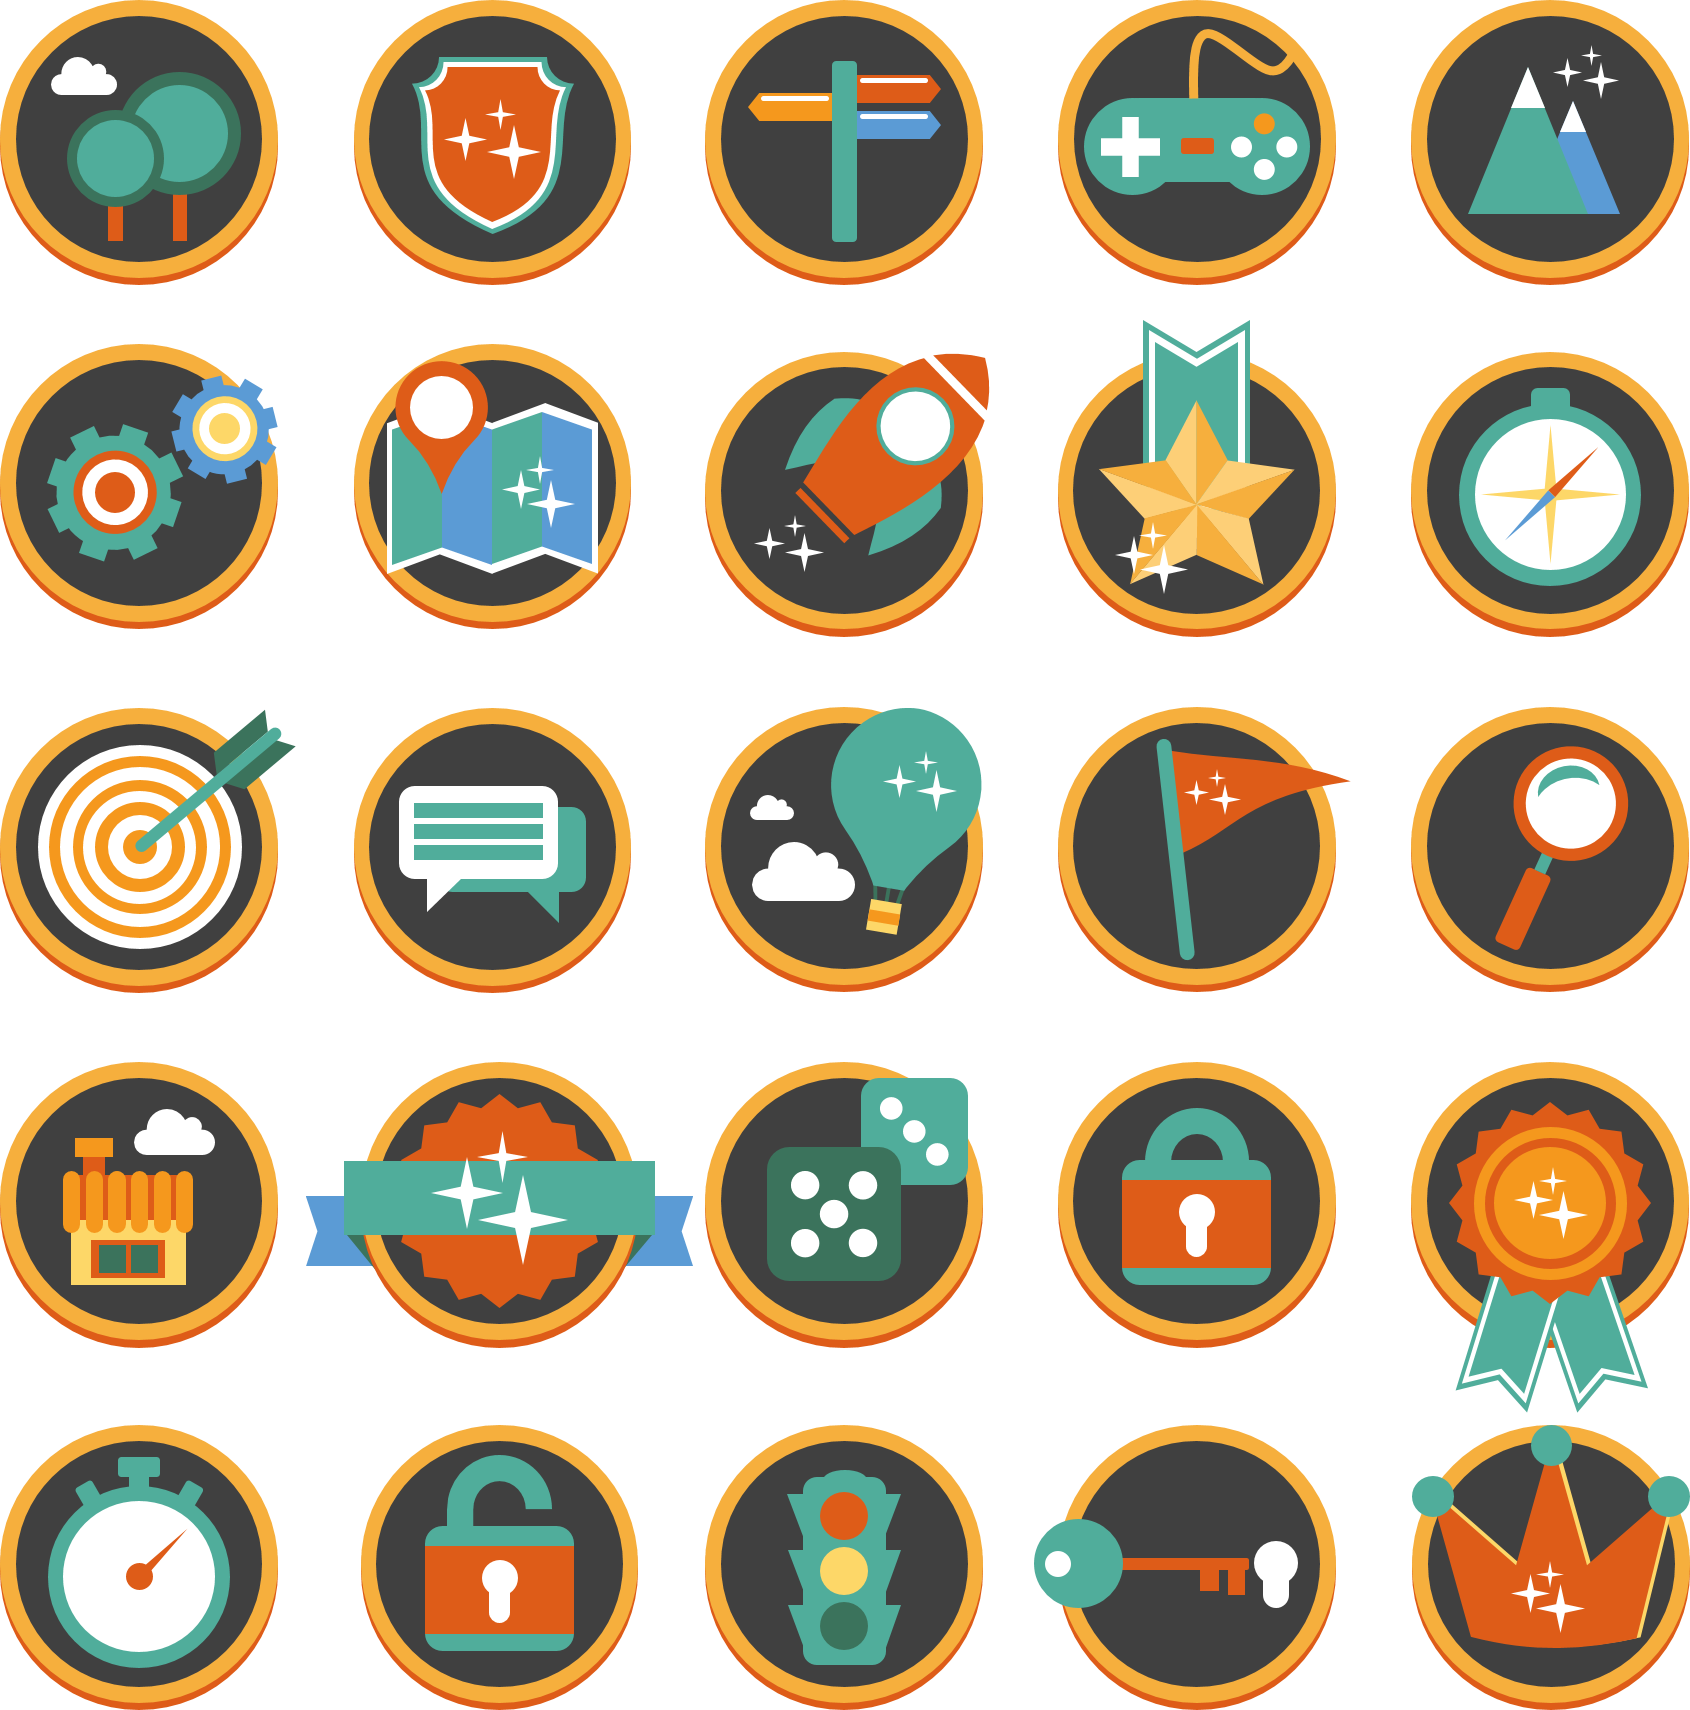 Flat Gamification Icons  The icon set created 100% in PowerPower by